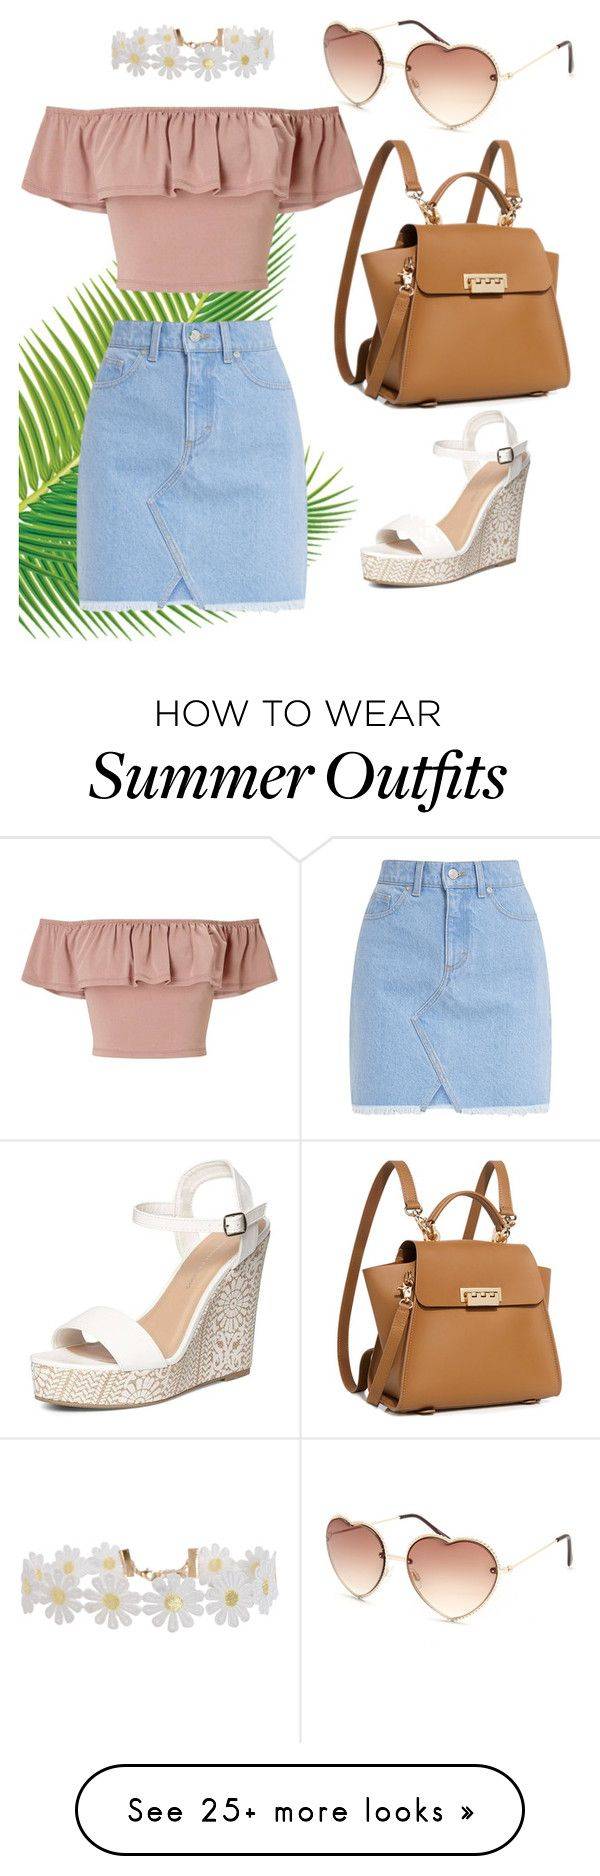 """Summer Boardwalk Outfit"" by have-fun-with-it on Polyvore featuring Full Tilt, Miss Selfridge, Humble Chic, ZAC Zac Posen and Dorothy Perkins"